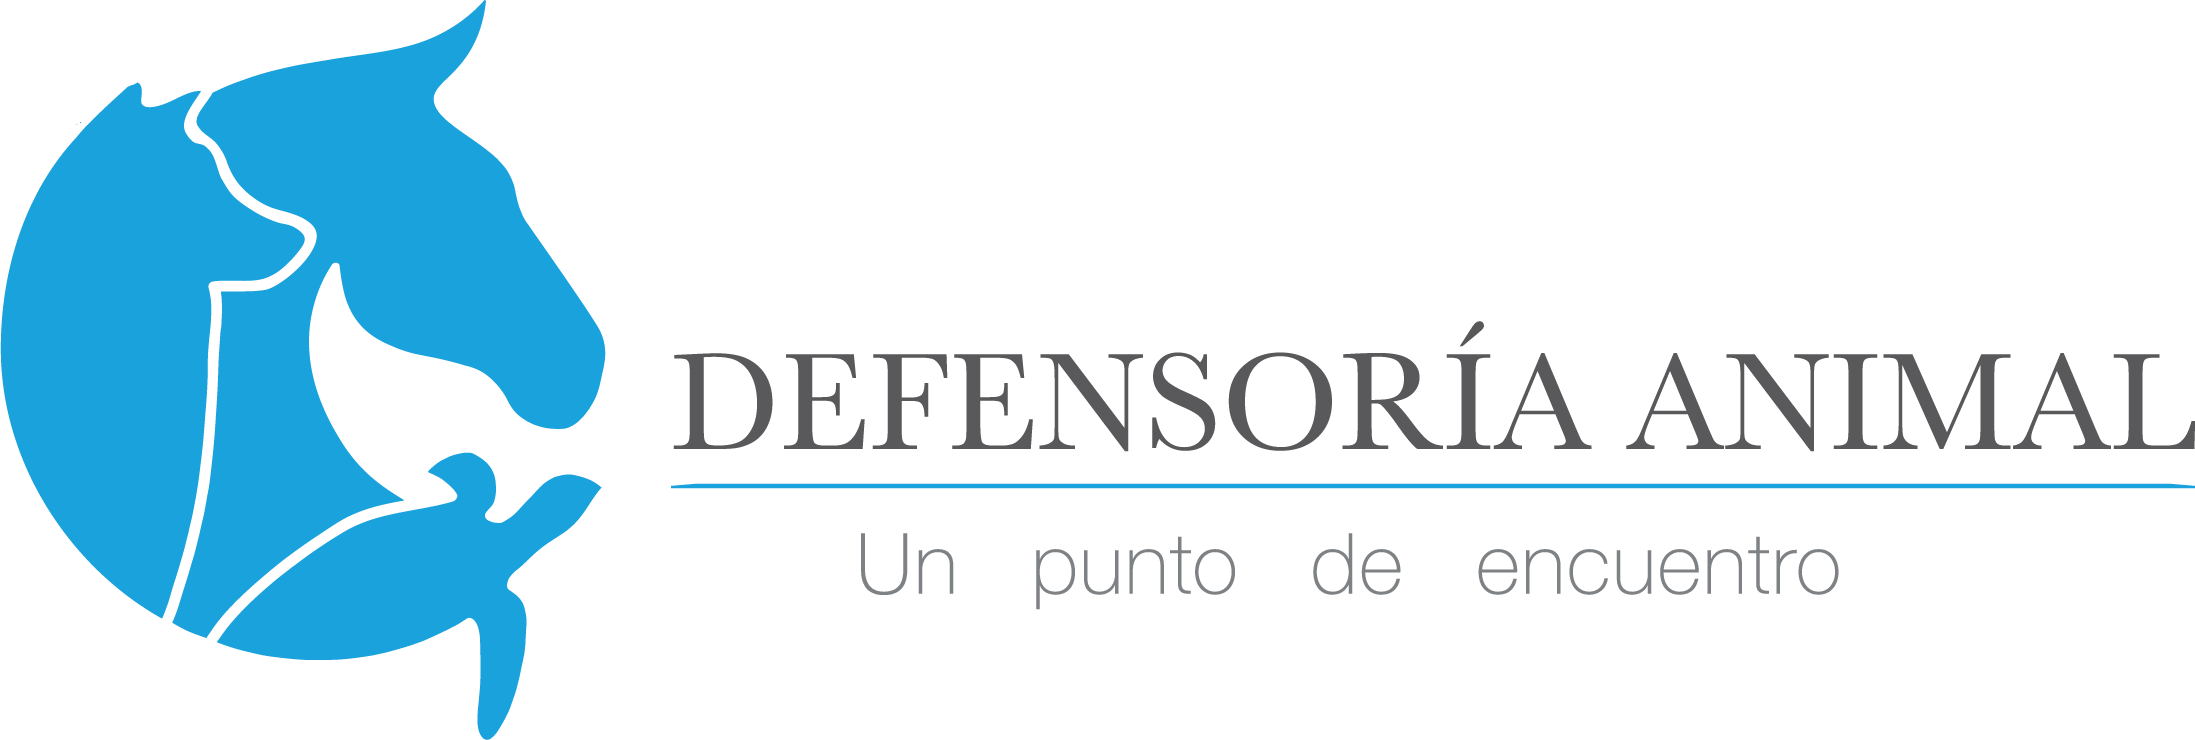 Defensoría Animal